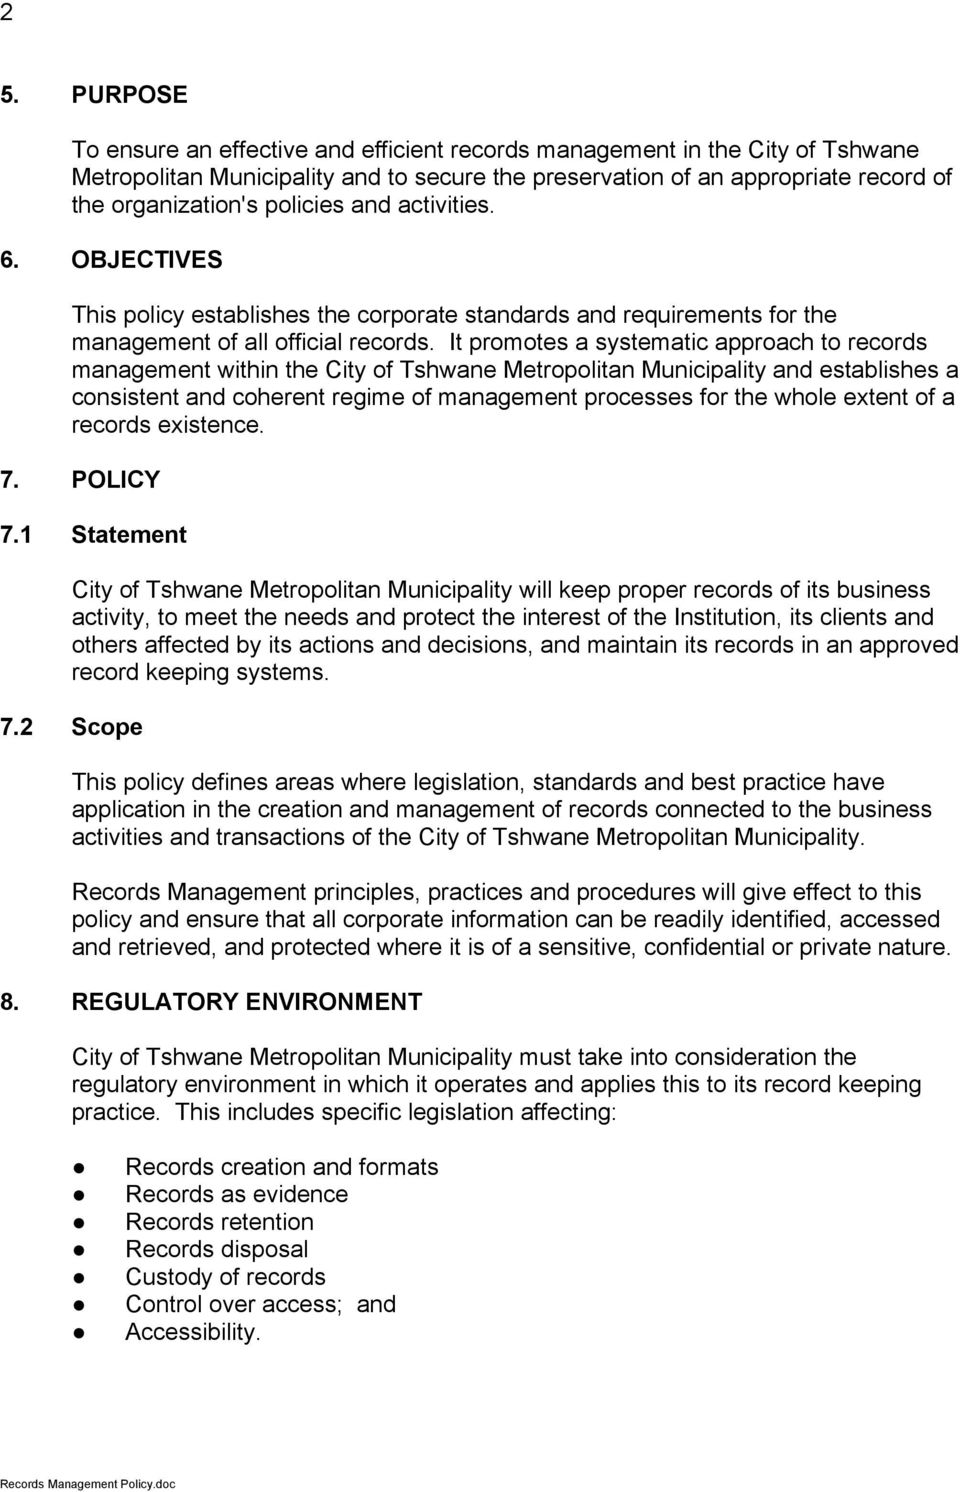 It promotes a systematic approach to records management within the City of Tshwane Metropolitan Municipality and establishes a consistent and coherent regime of management processes for the whole